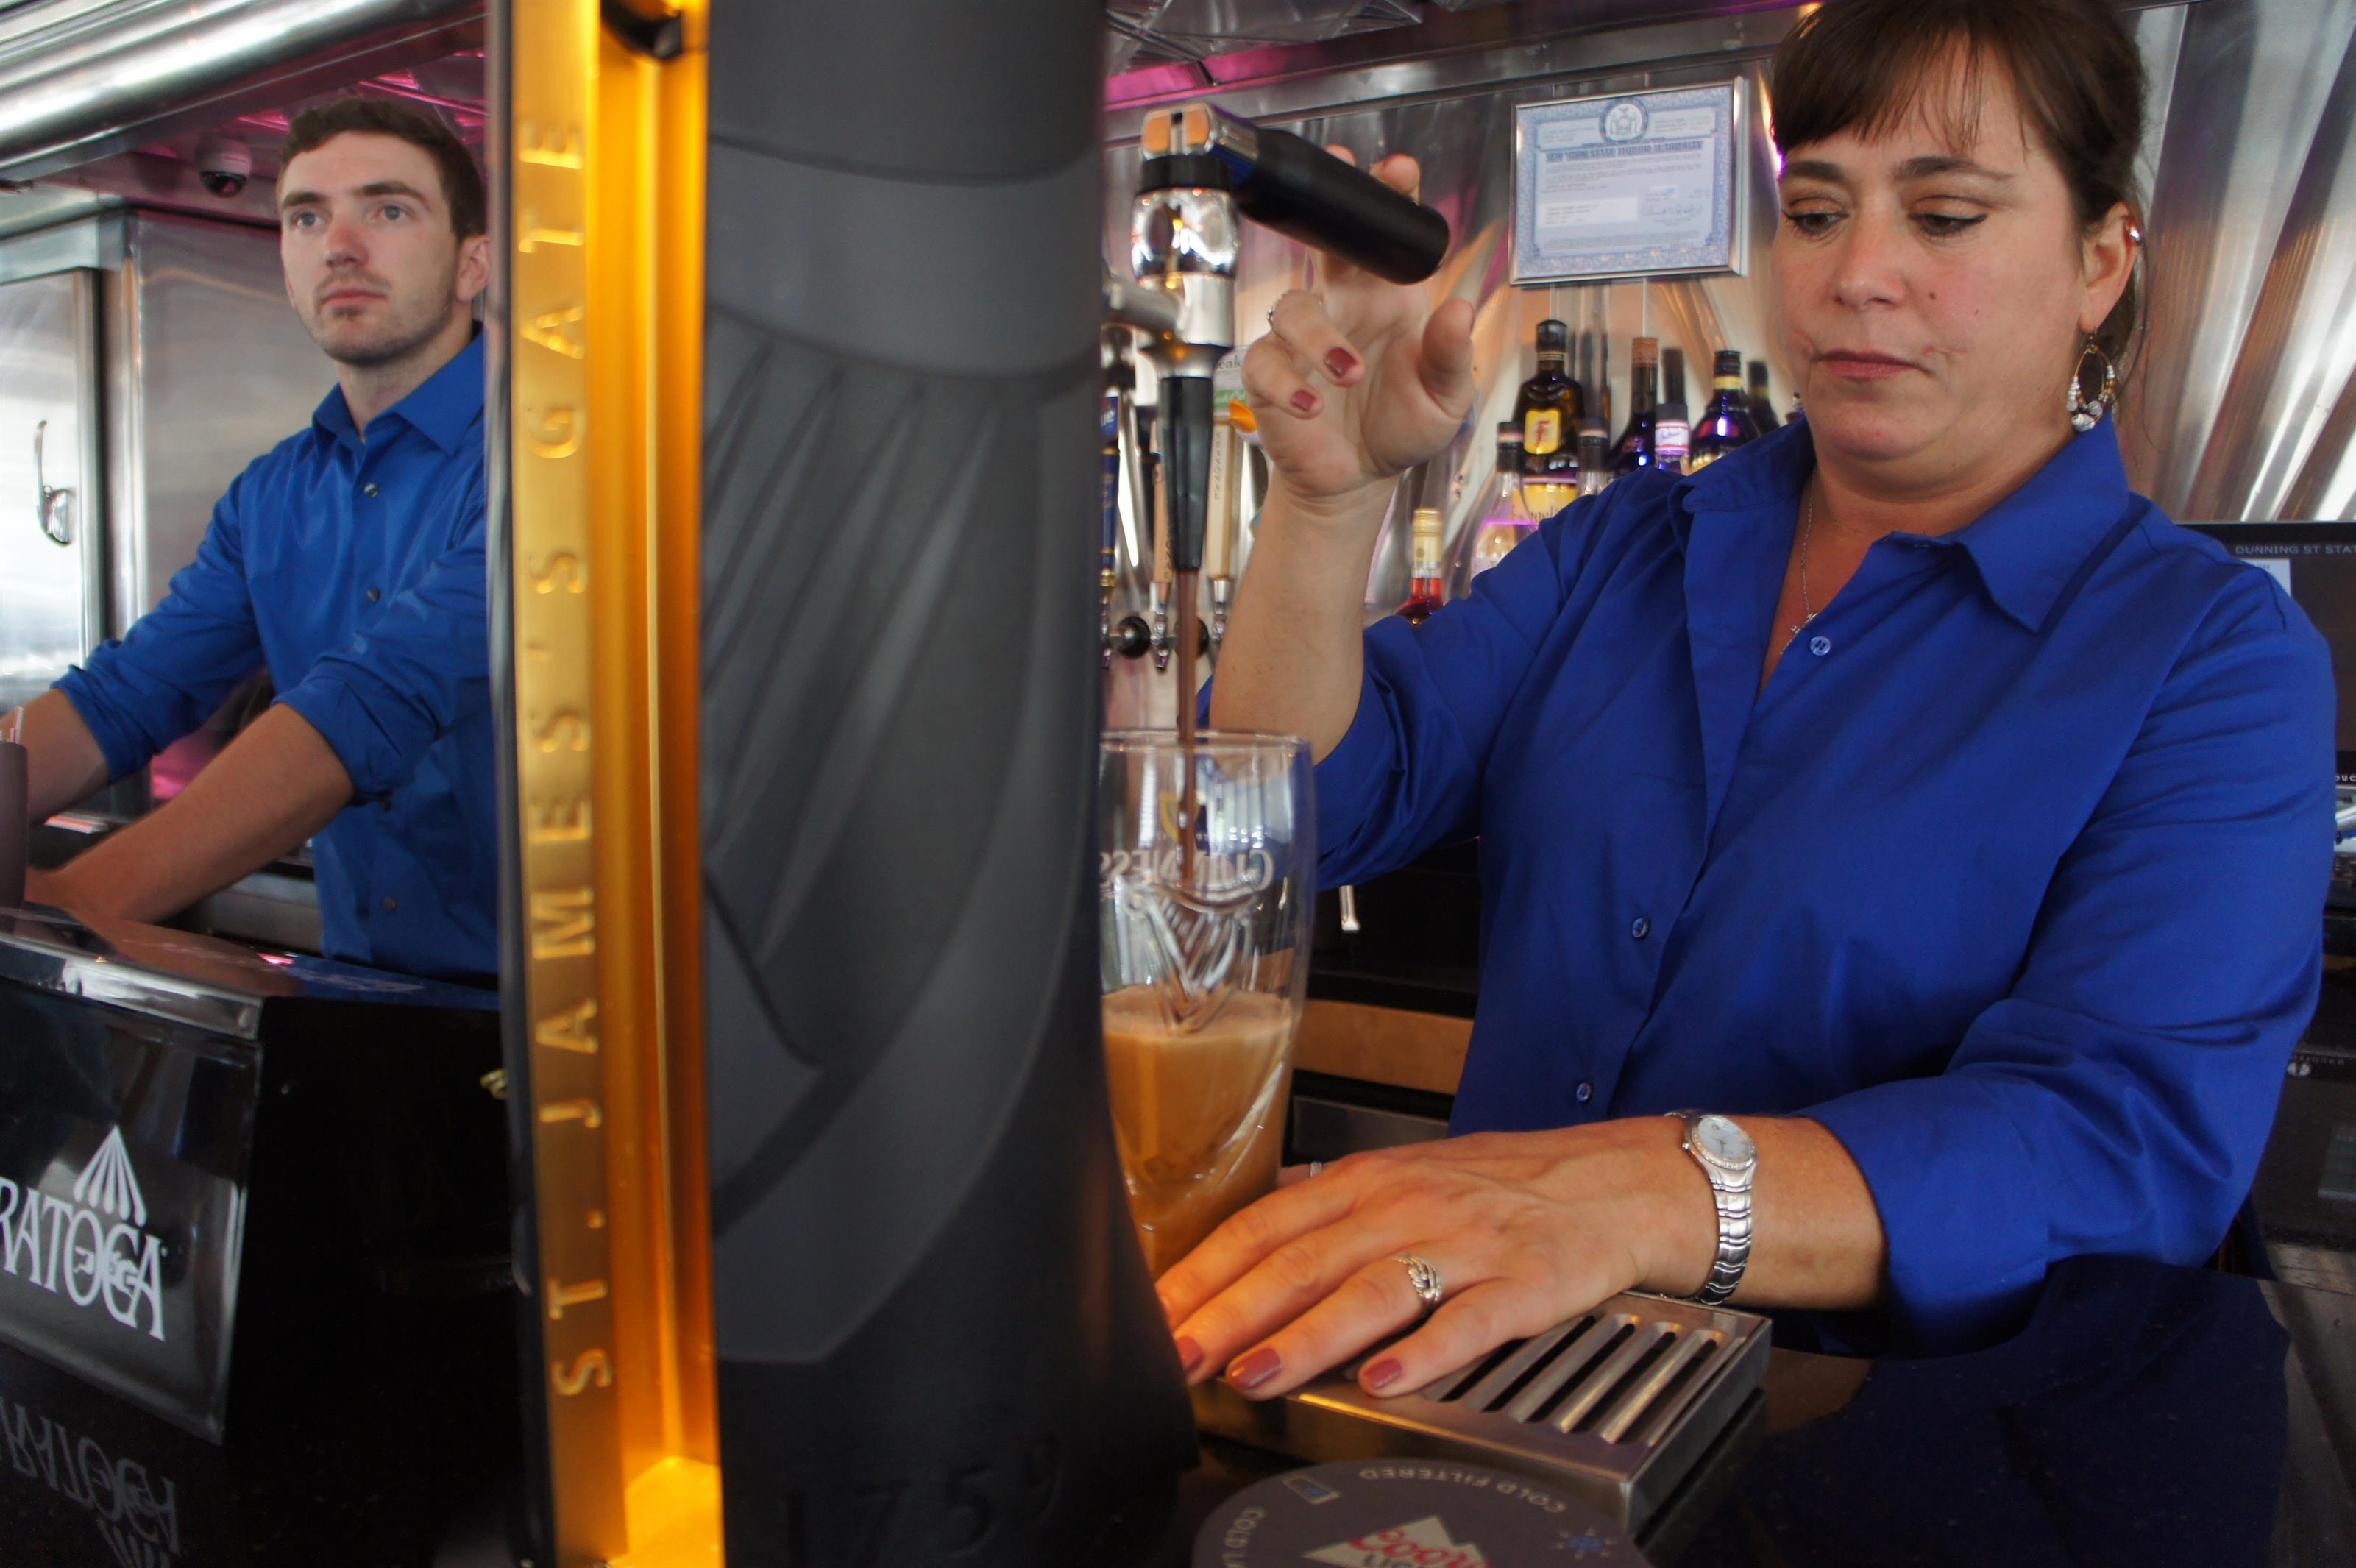 Woman and man bar tenders making drinks and pouring beer from the tap